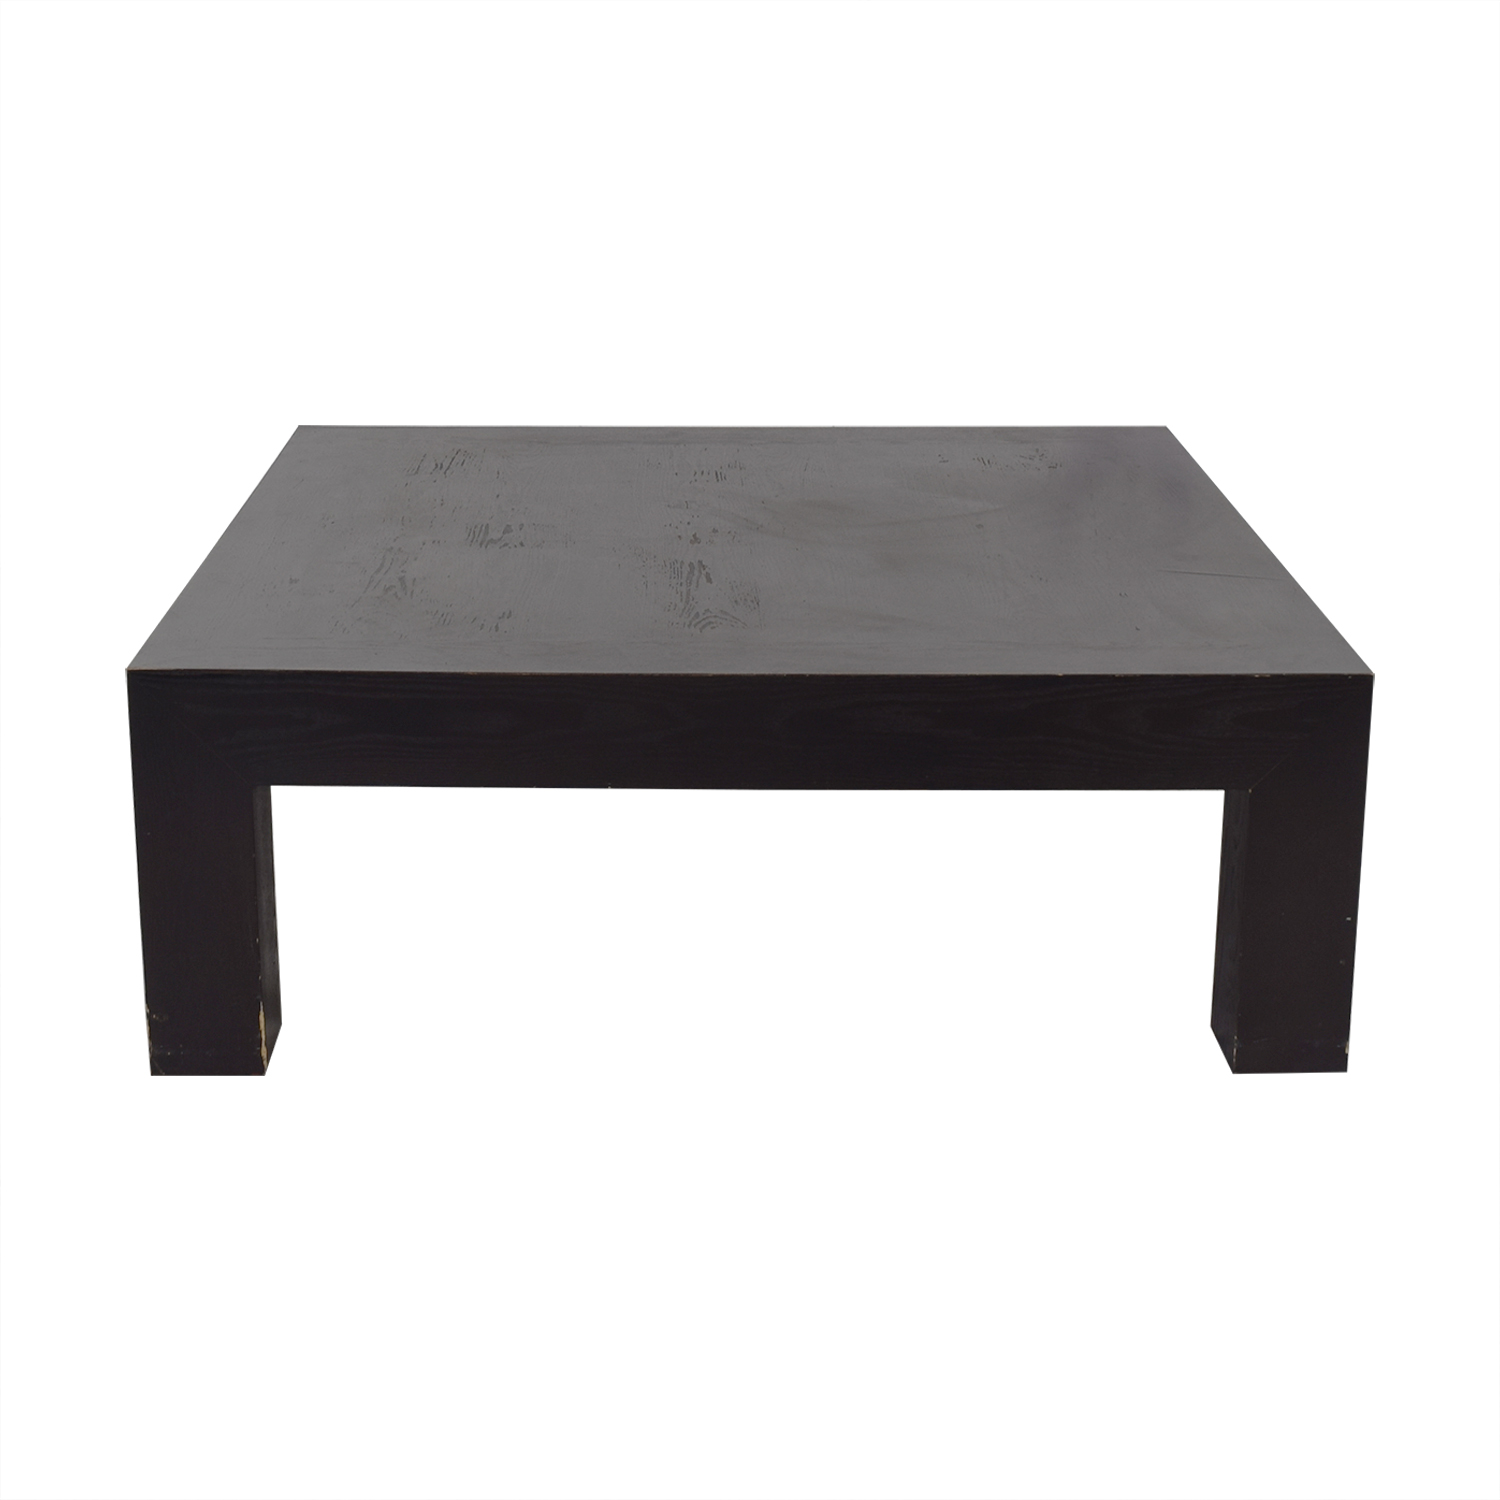 Low Square Coffee Table nj